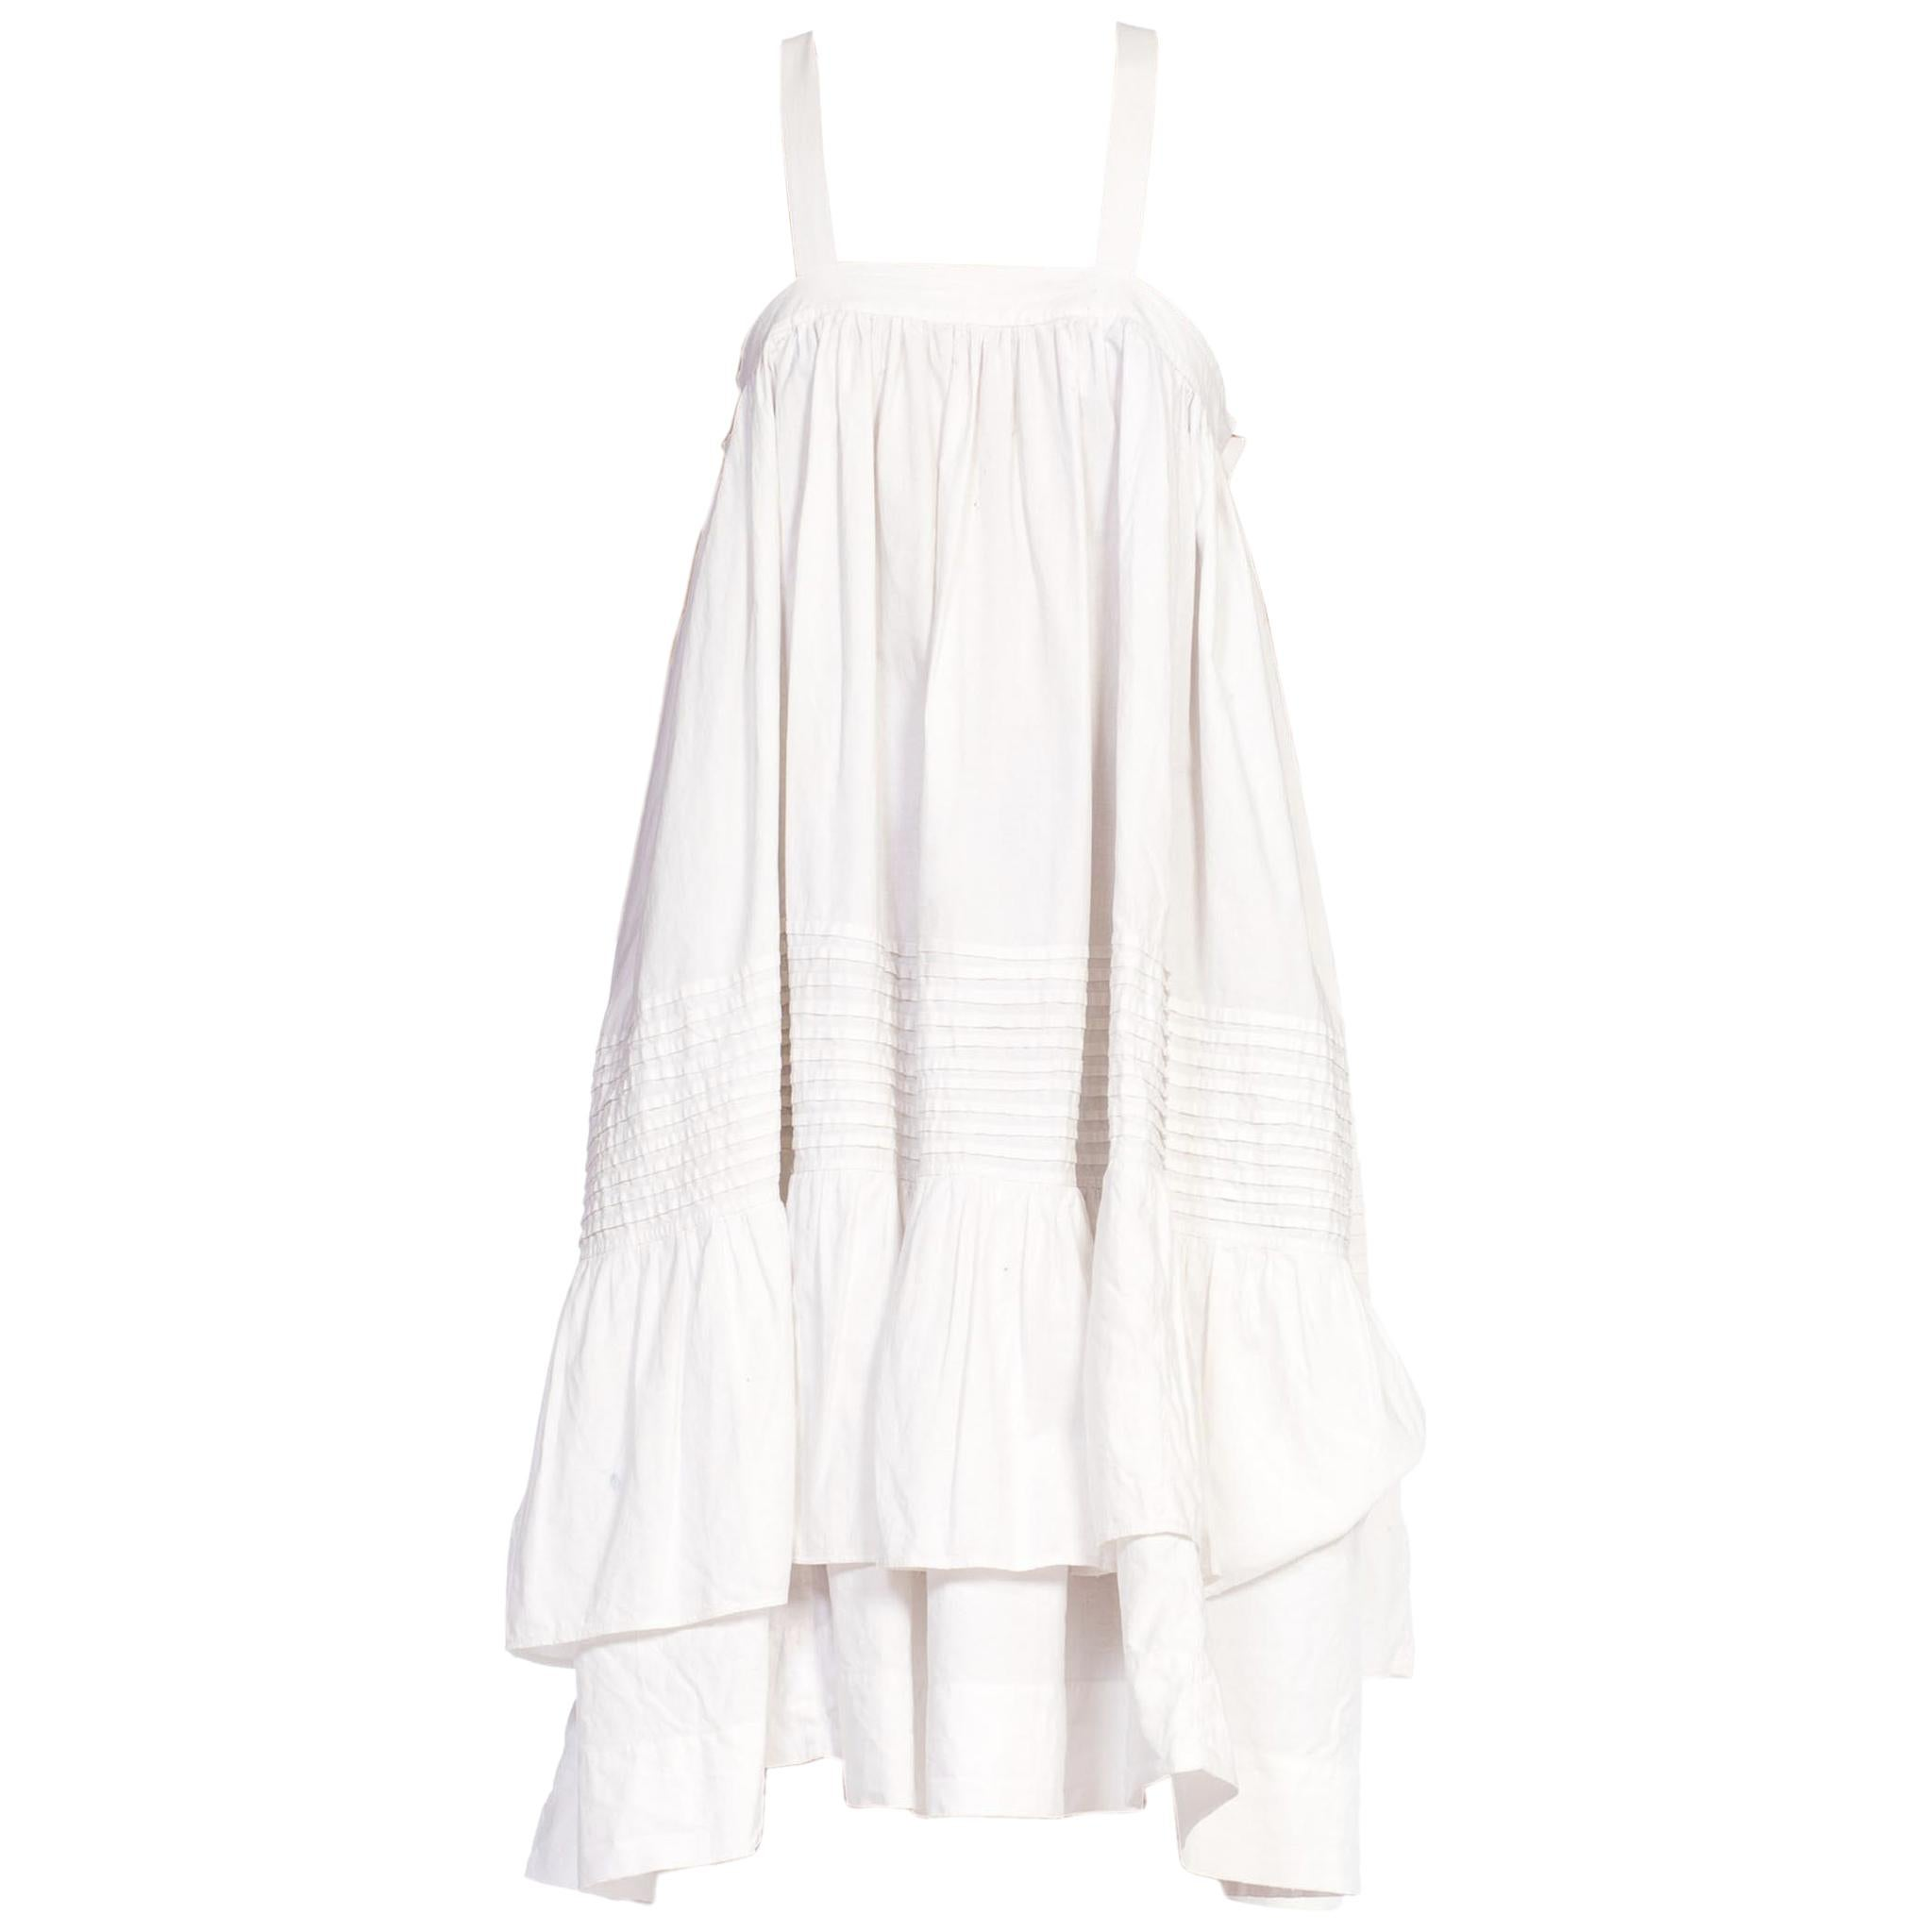 MORPHEW COLLECTION White Organic Cotton Tunic Dress Made From A Victorian Skirt